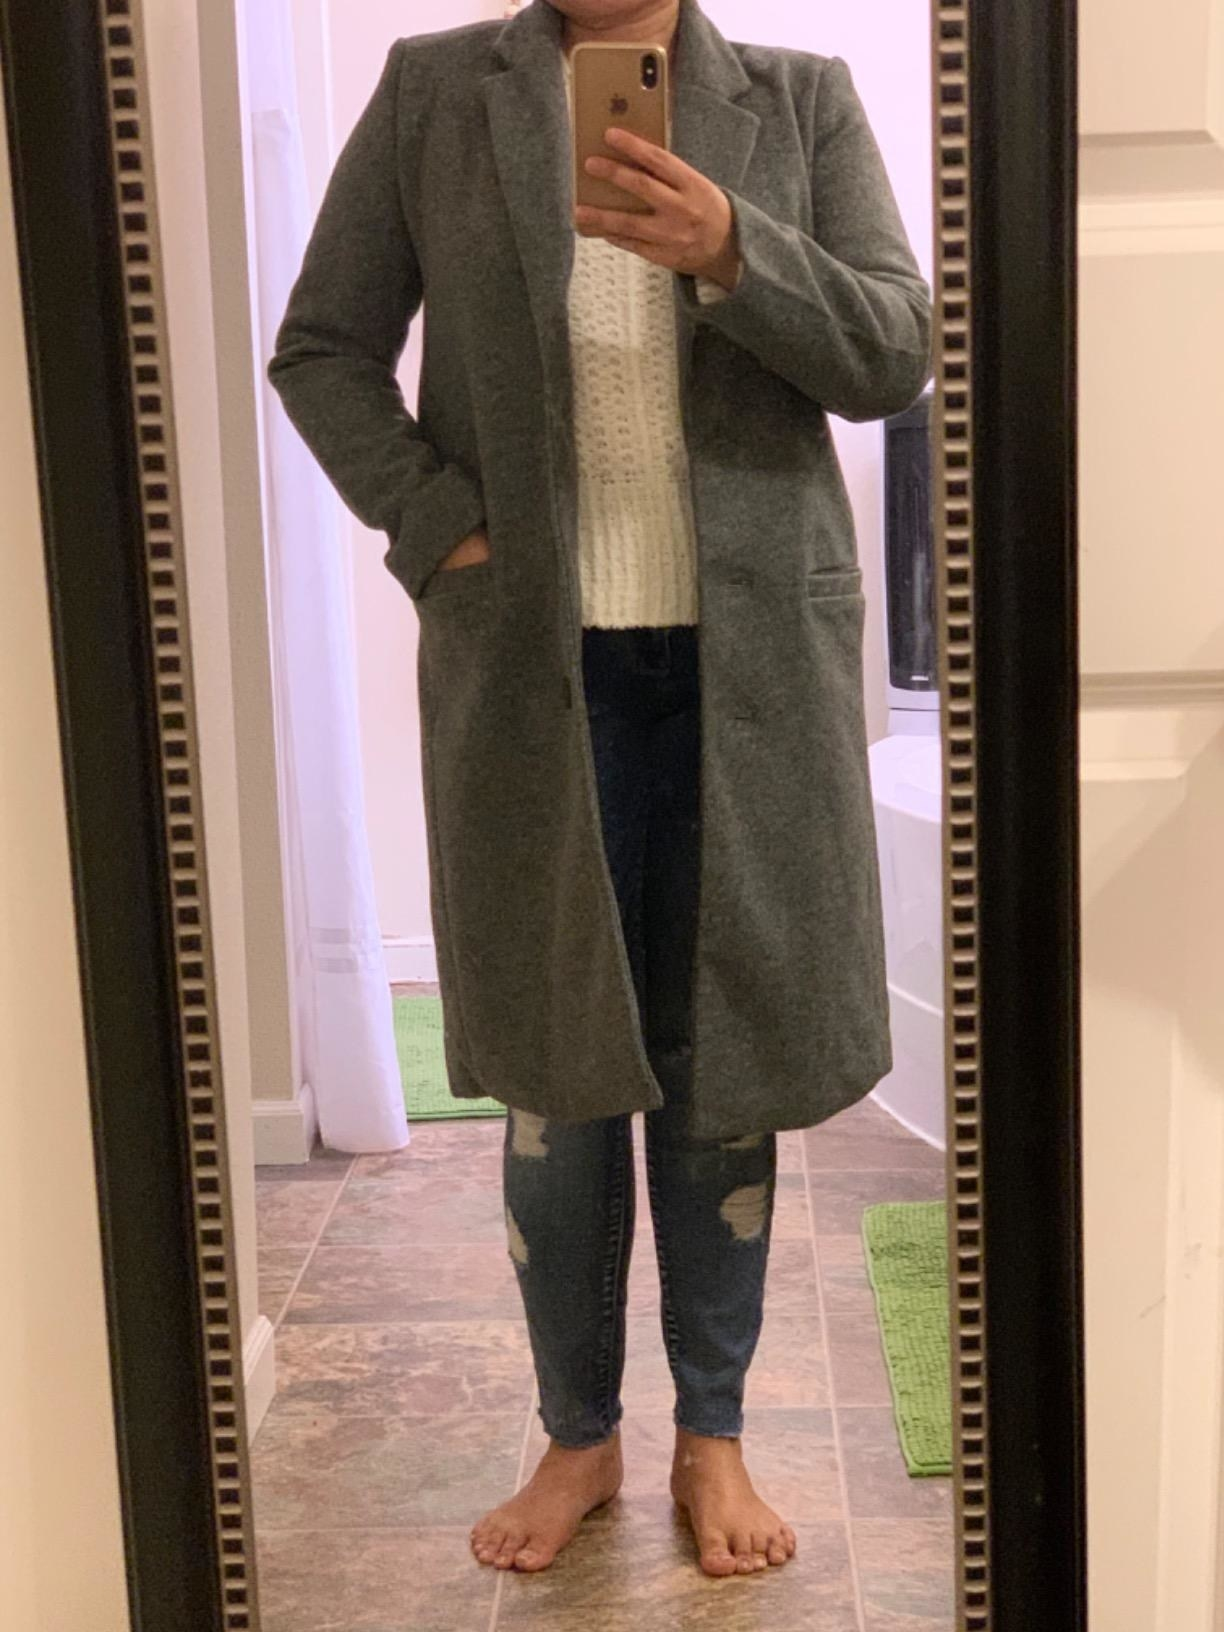 Reviewer in the grey knee-length coat